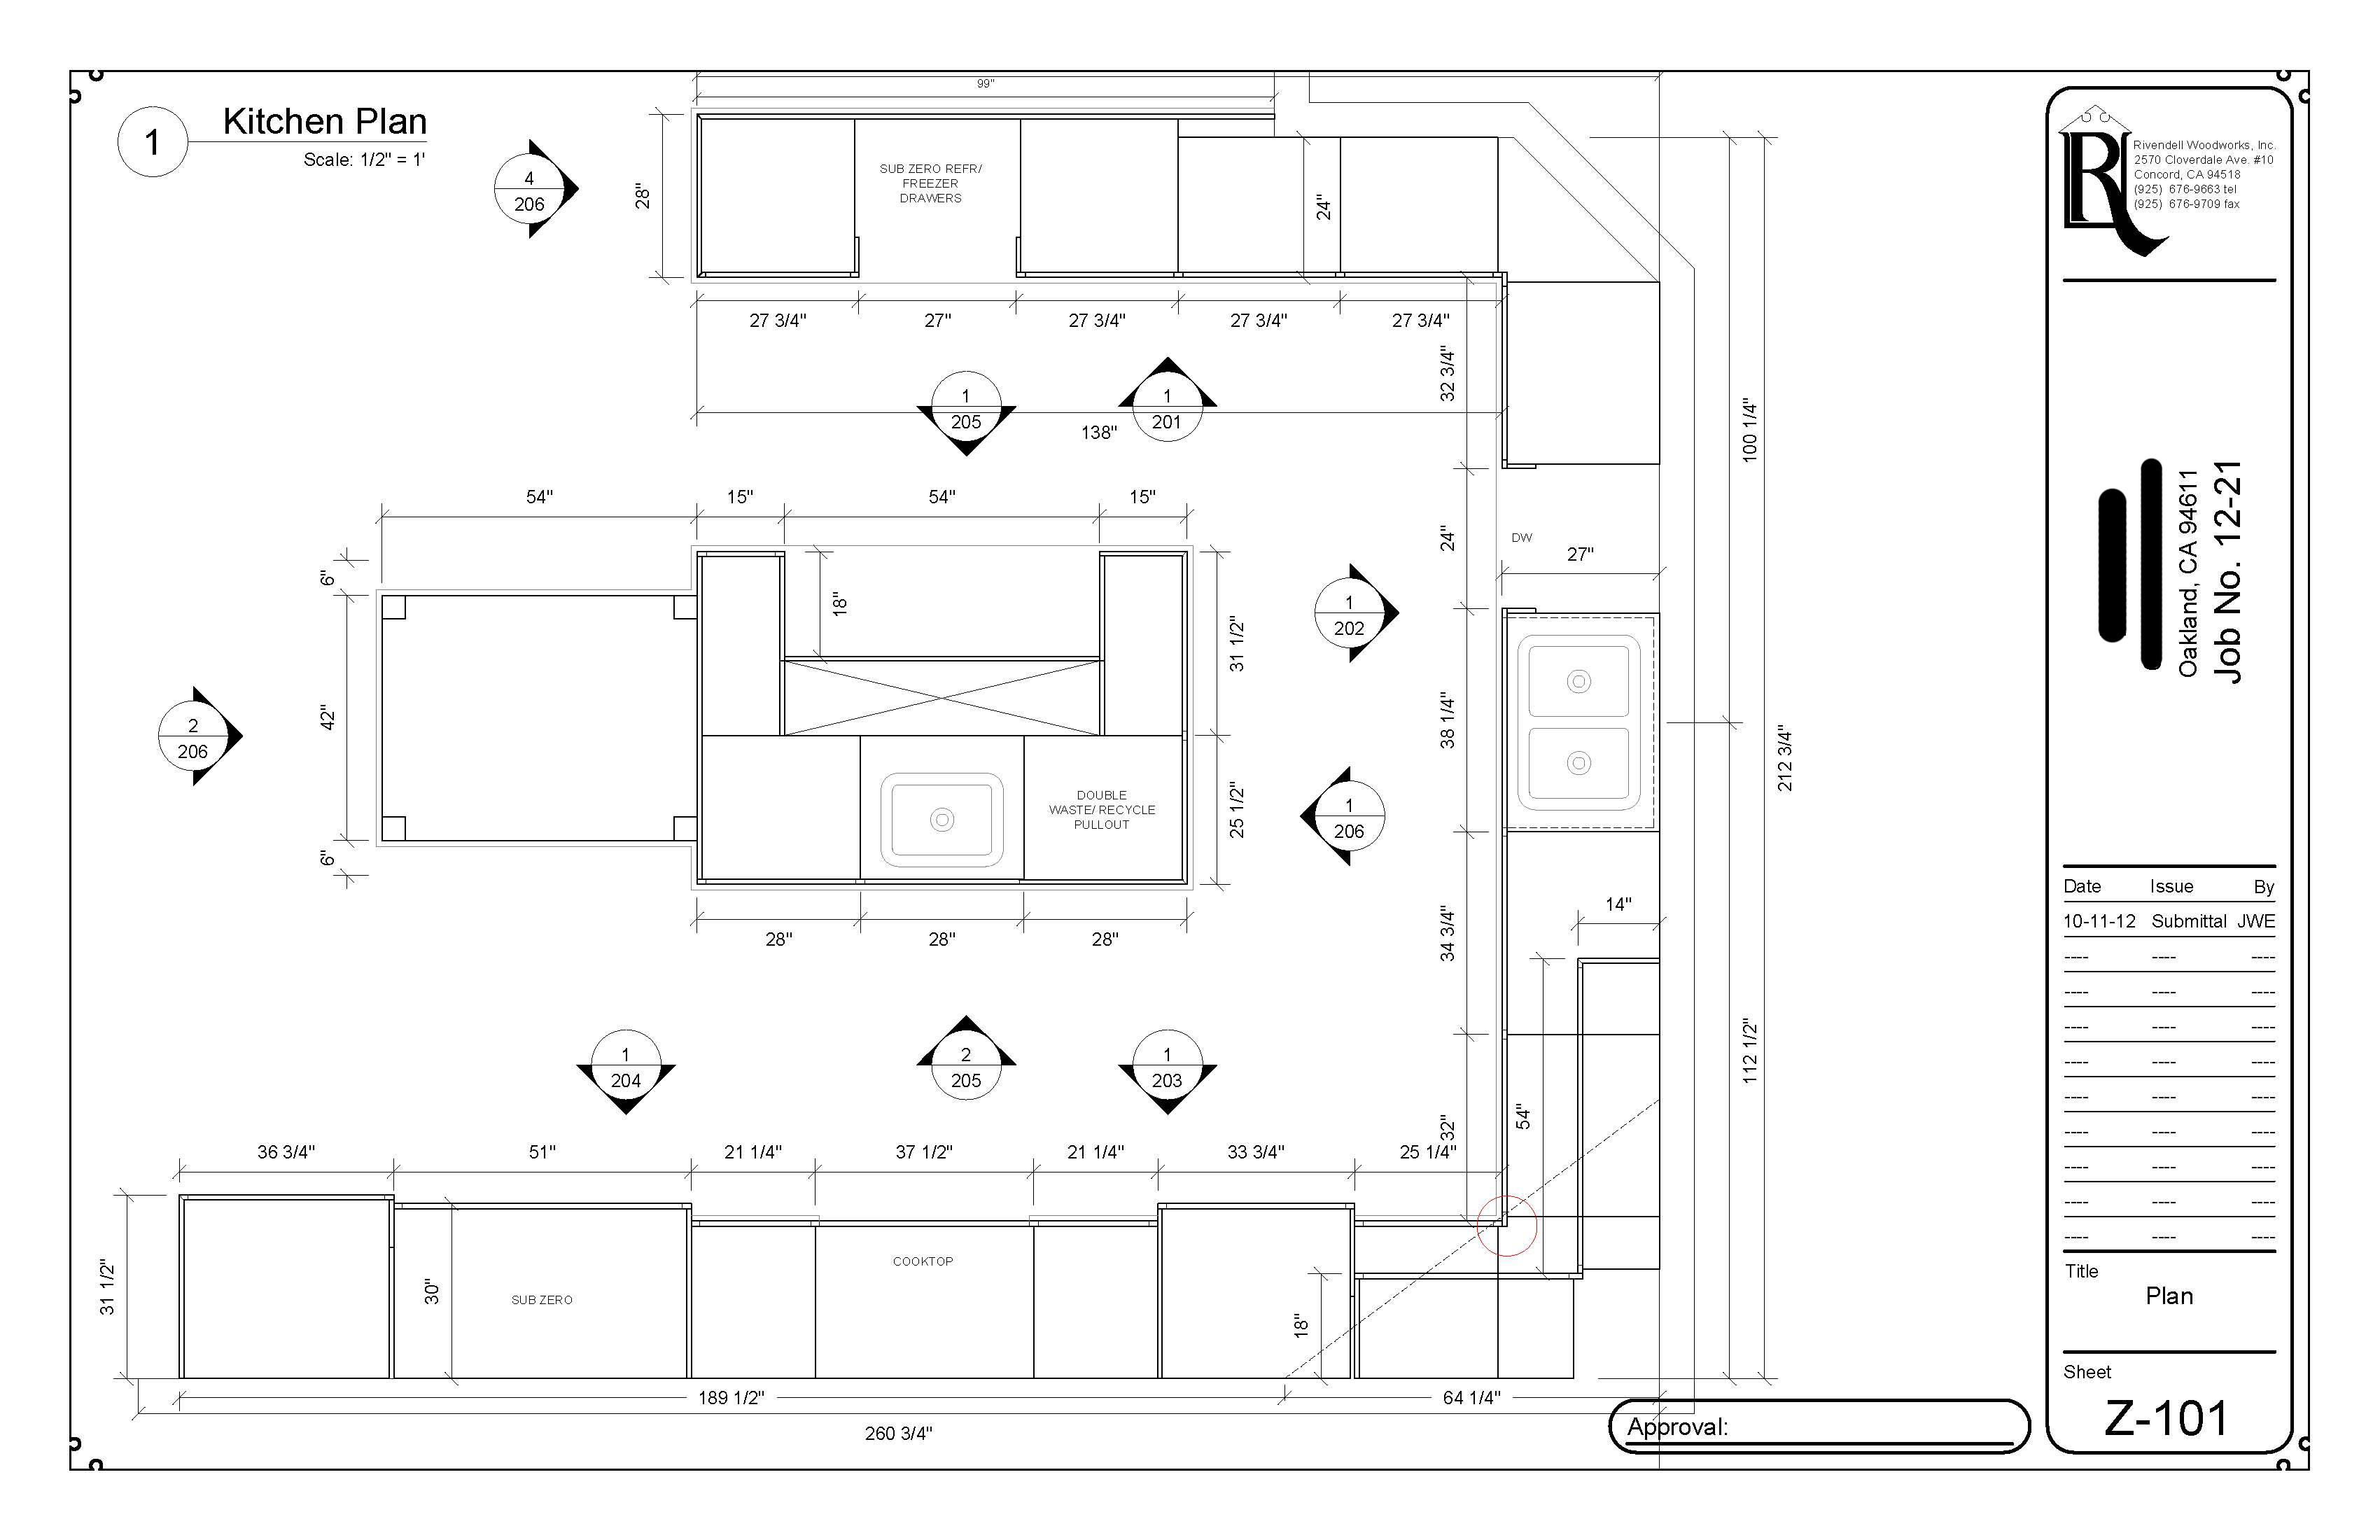 Kitchen Plan View